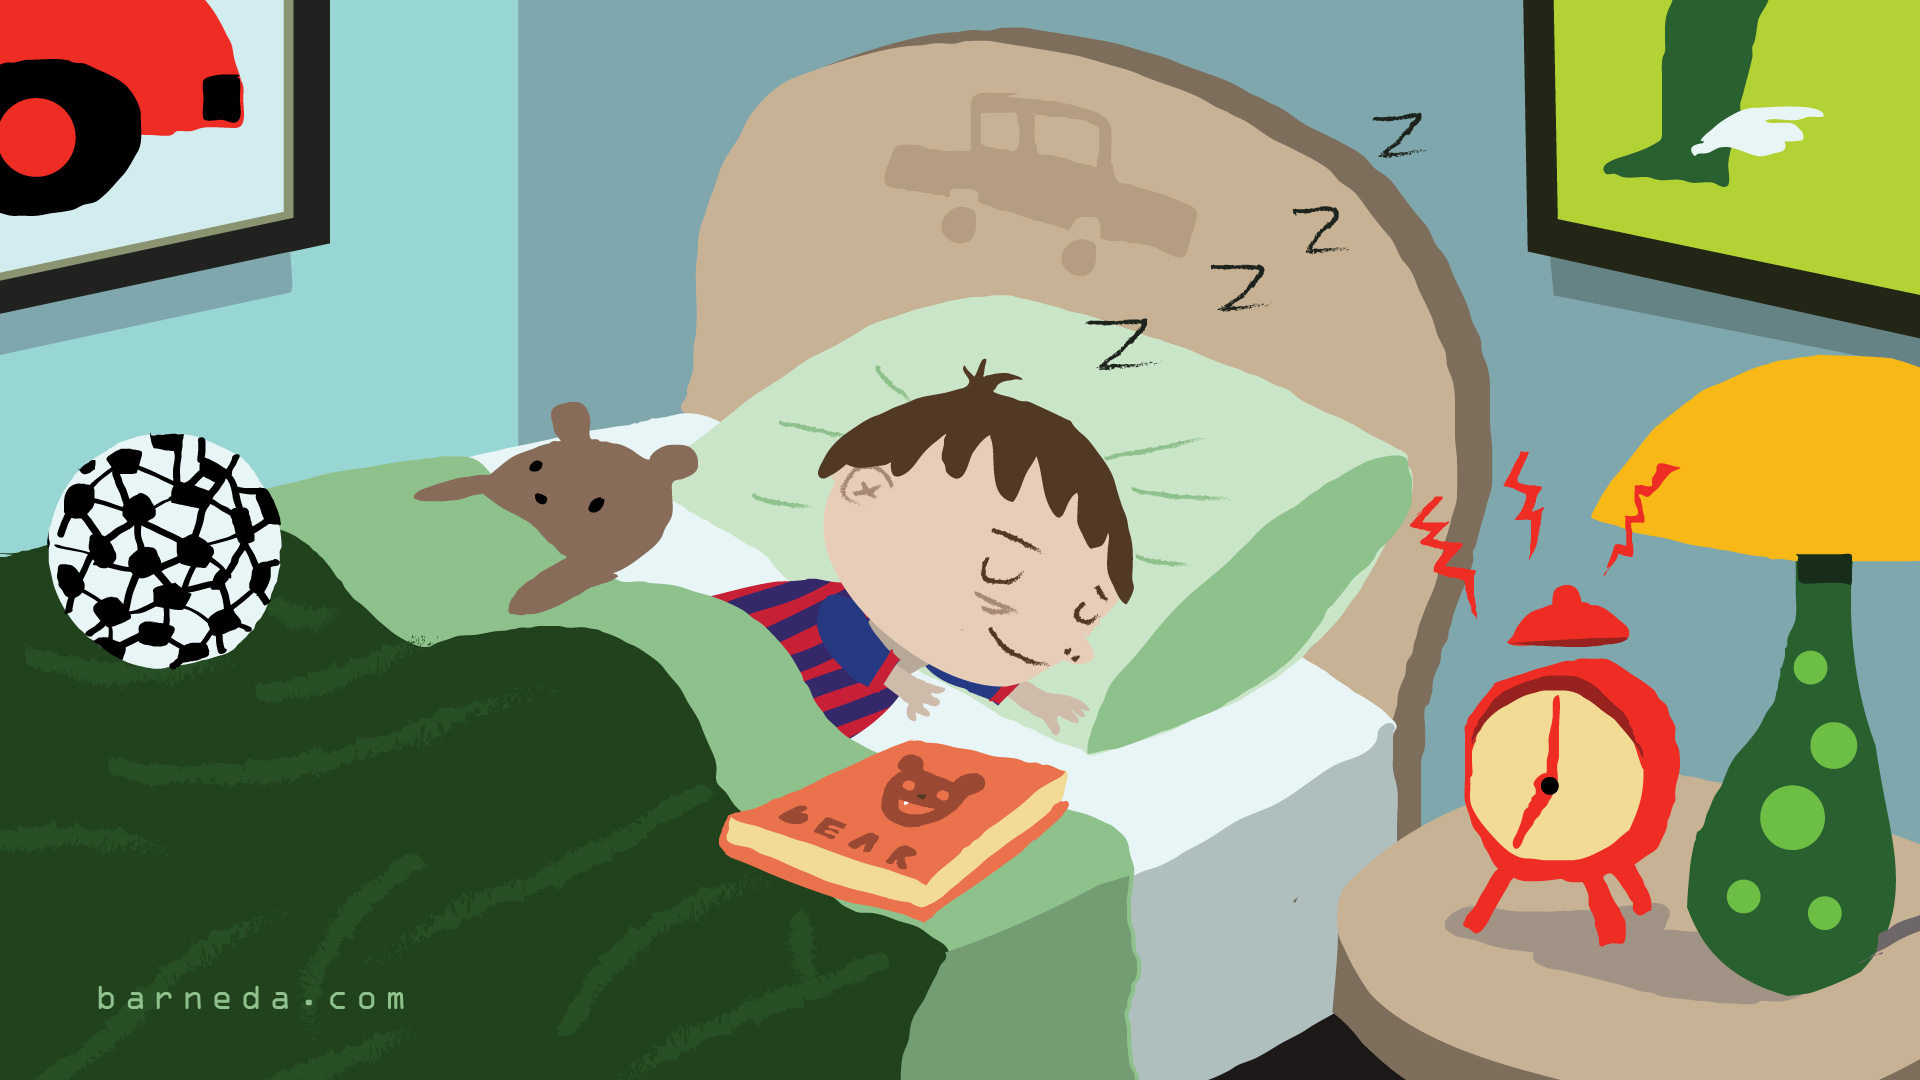 Bedtime clipart childrens bed, Bedtime childrens bed ...